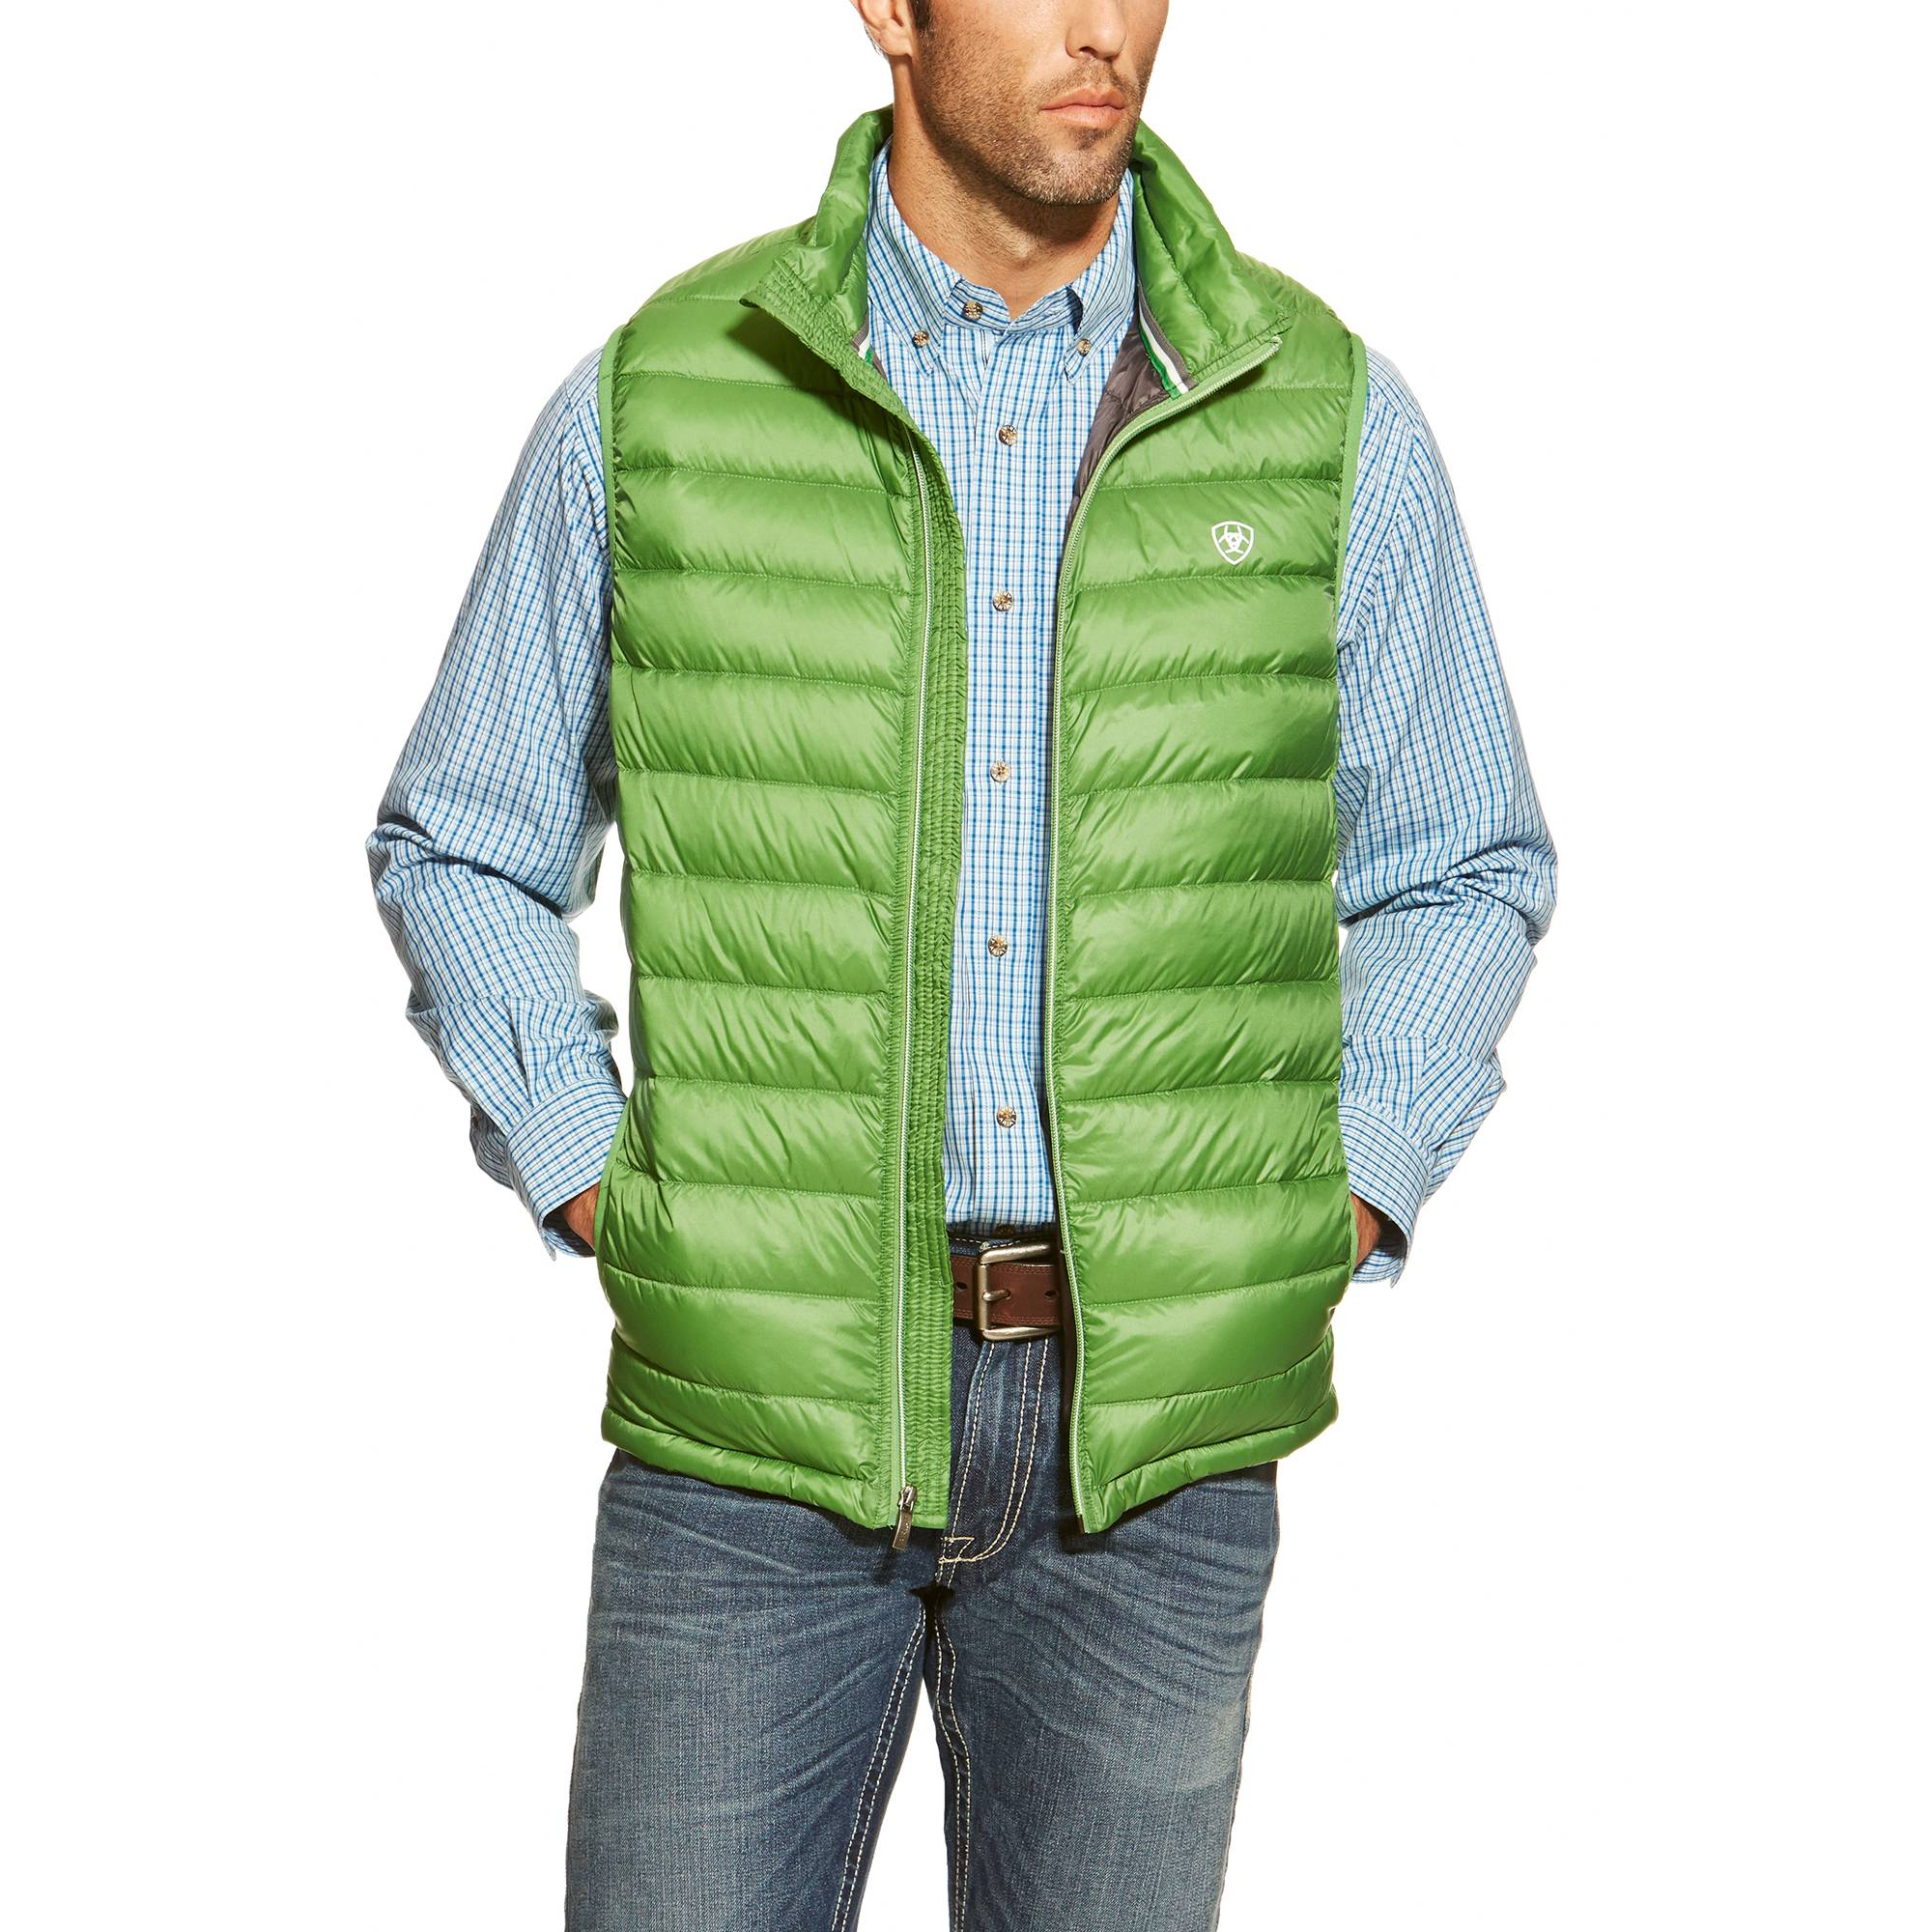 Ariat Ideal Down Vest - Mens - Isla Verde